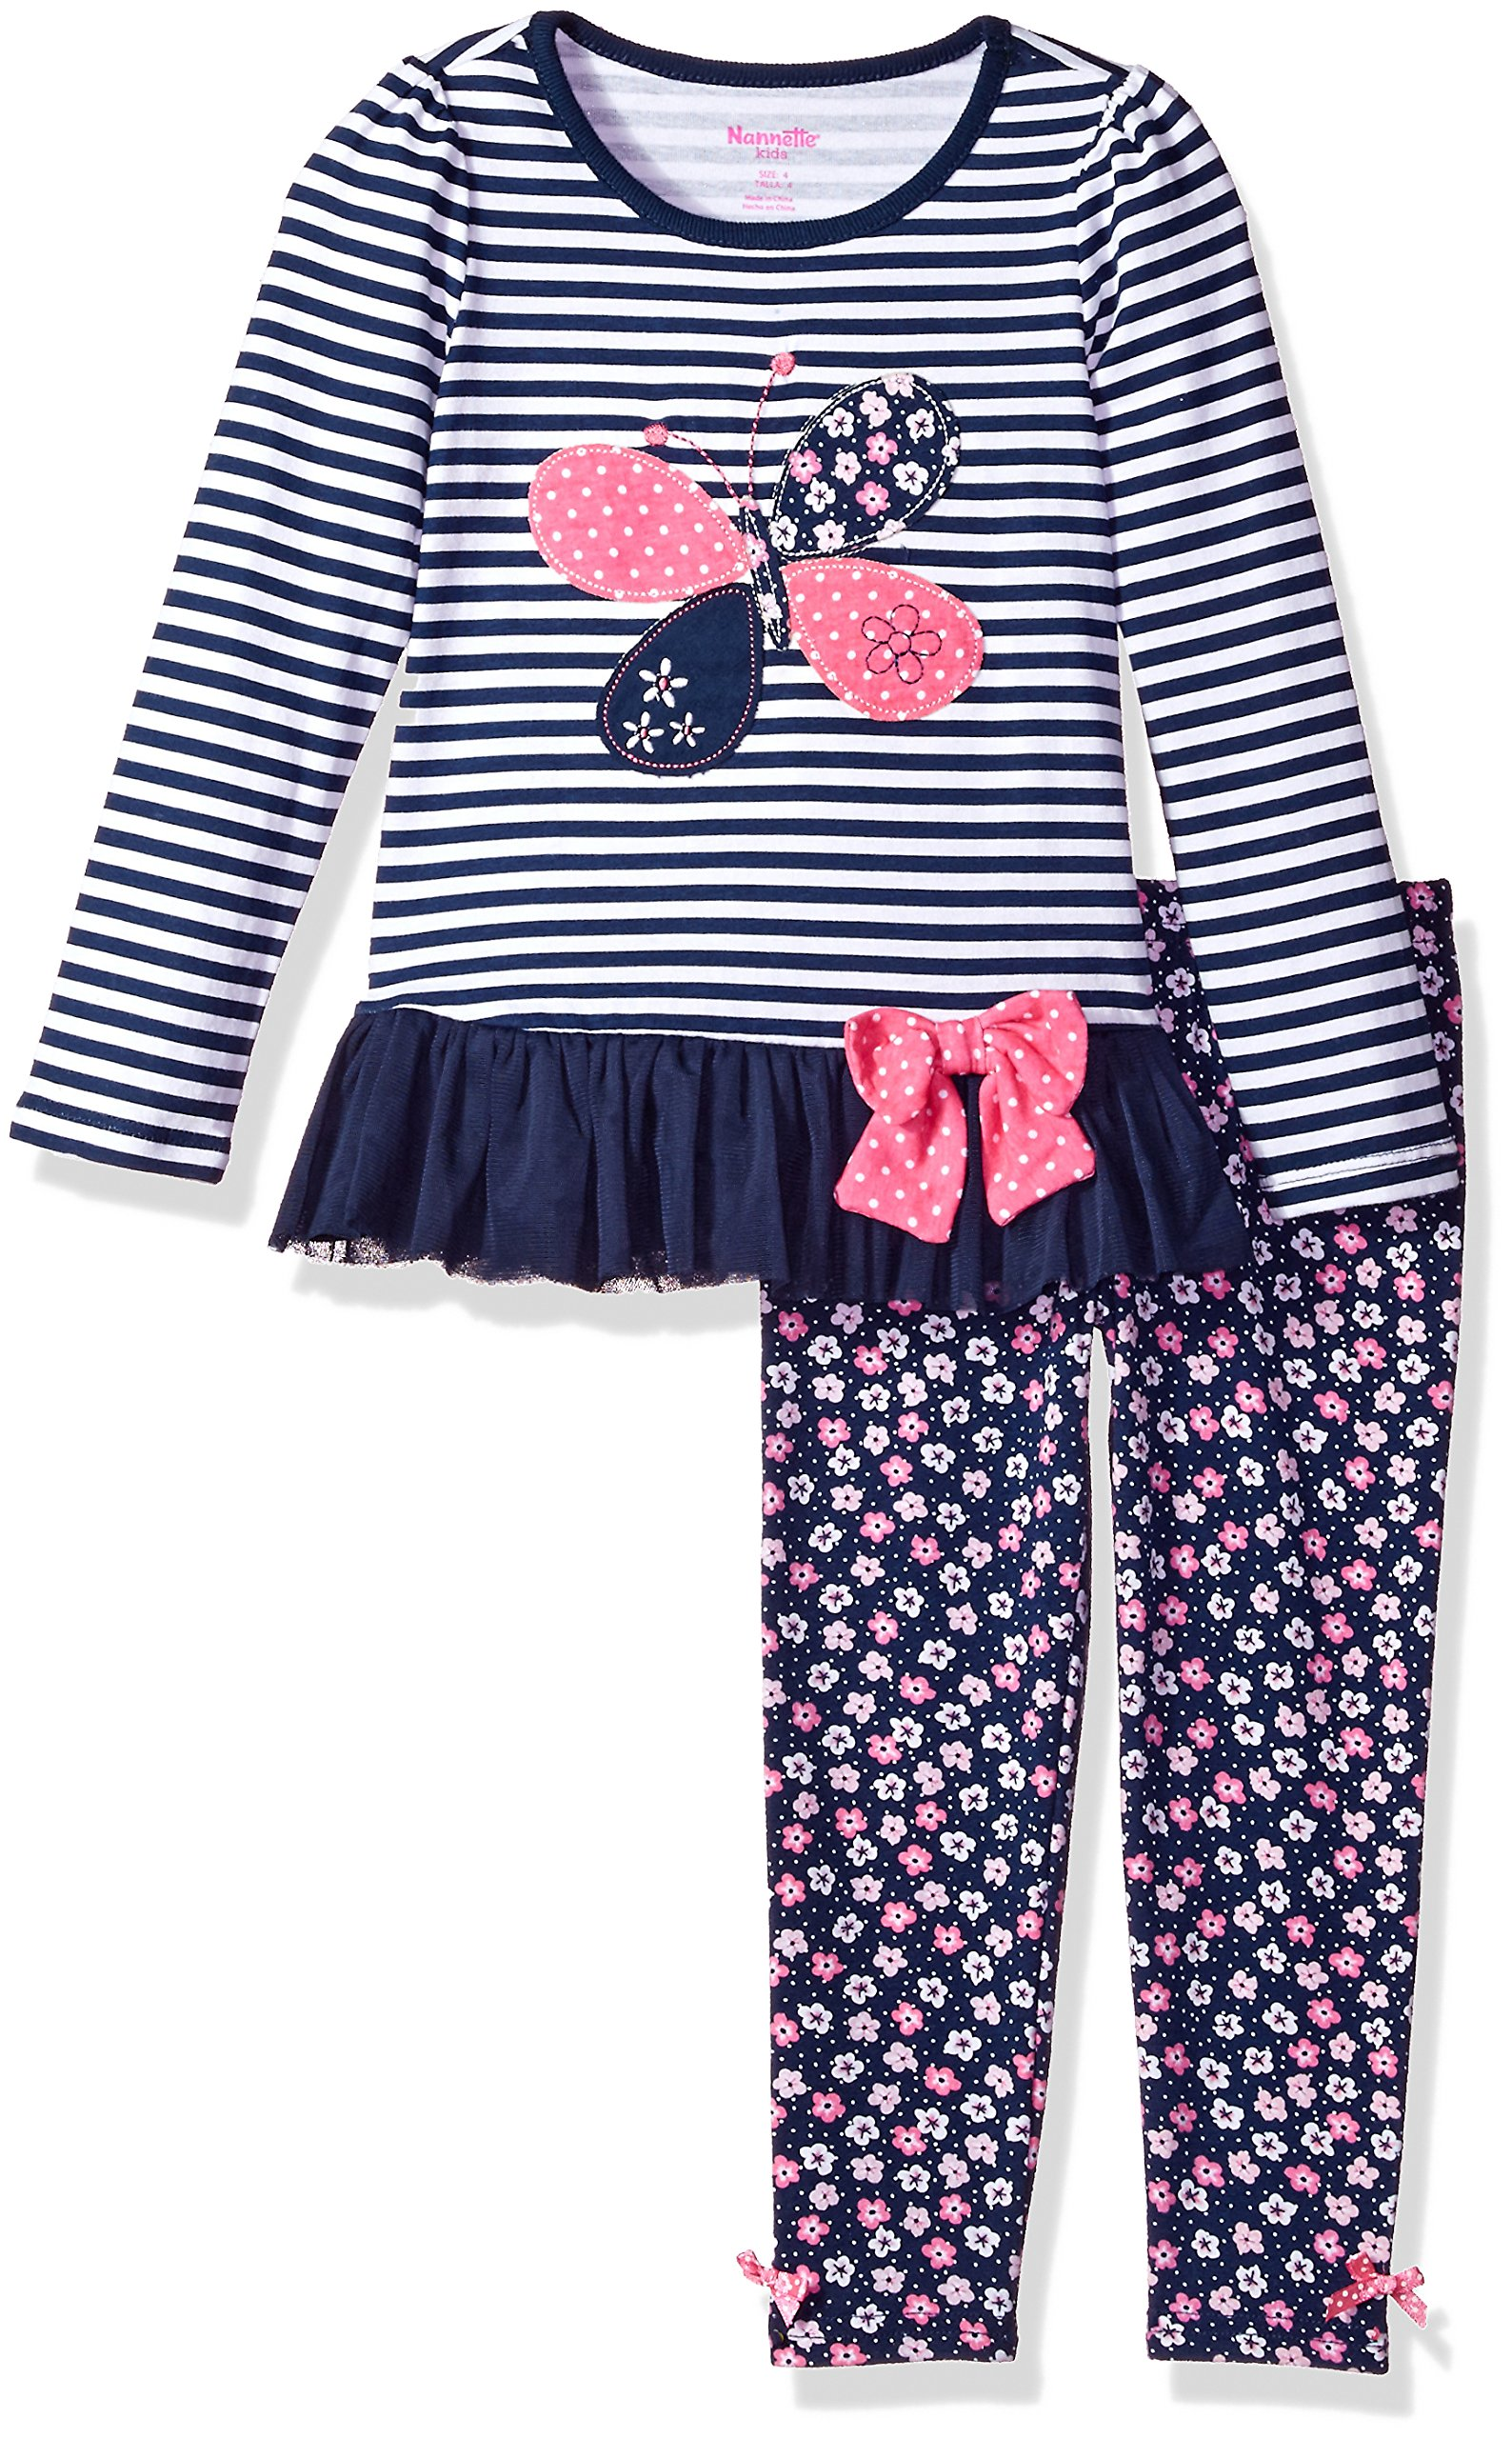 Nannette Little Girls' 2 Piece Playwear Long Sleeve Top and Legging Set, Navy Blue, 6